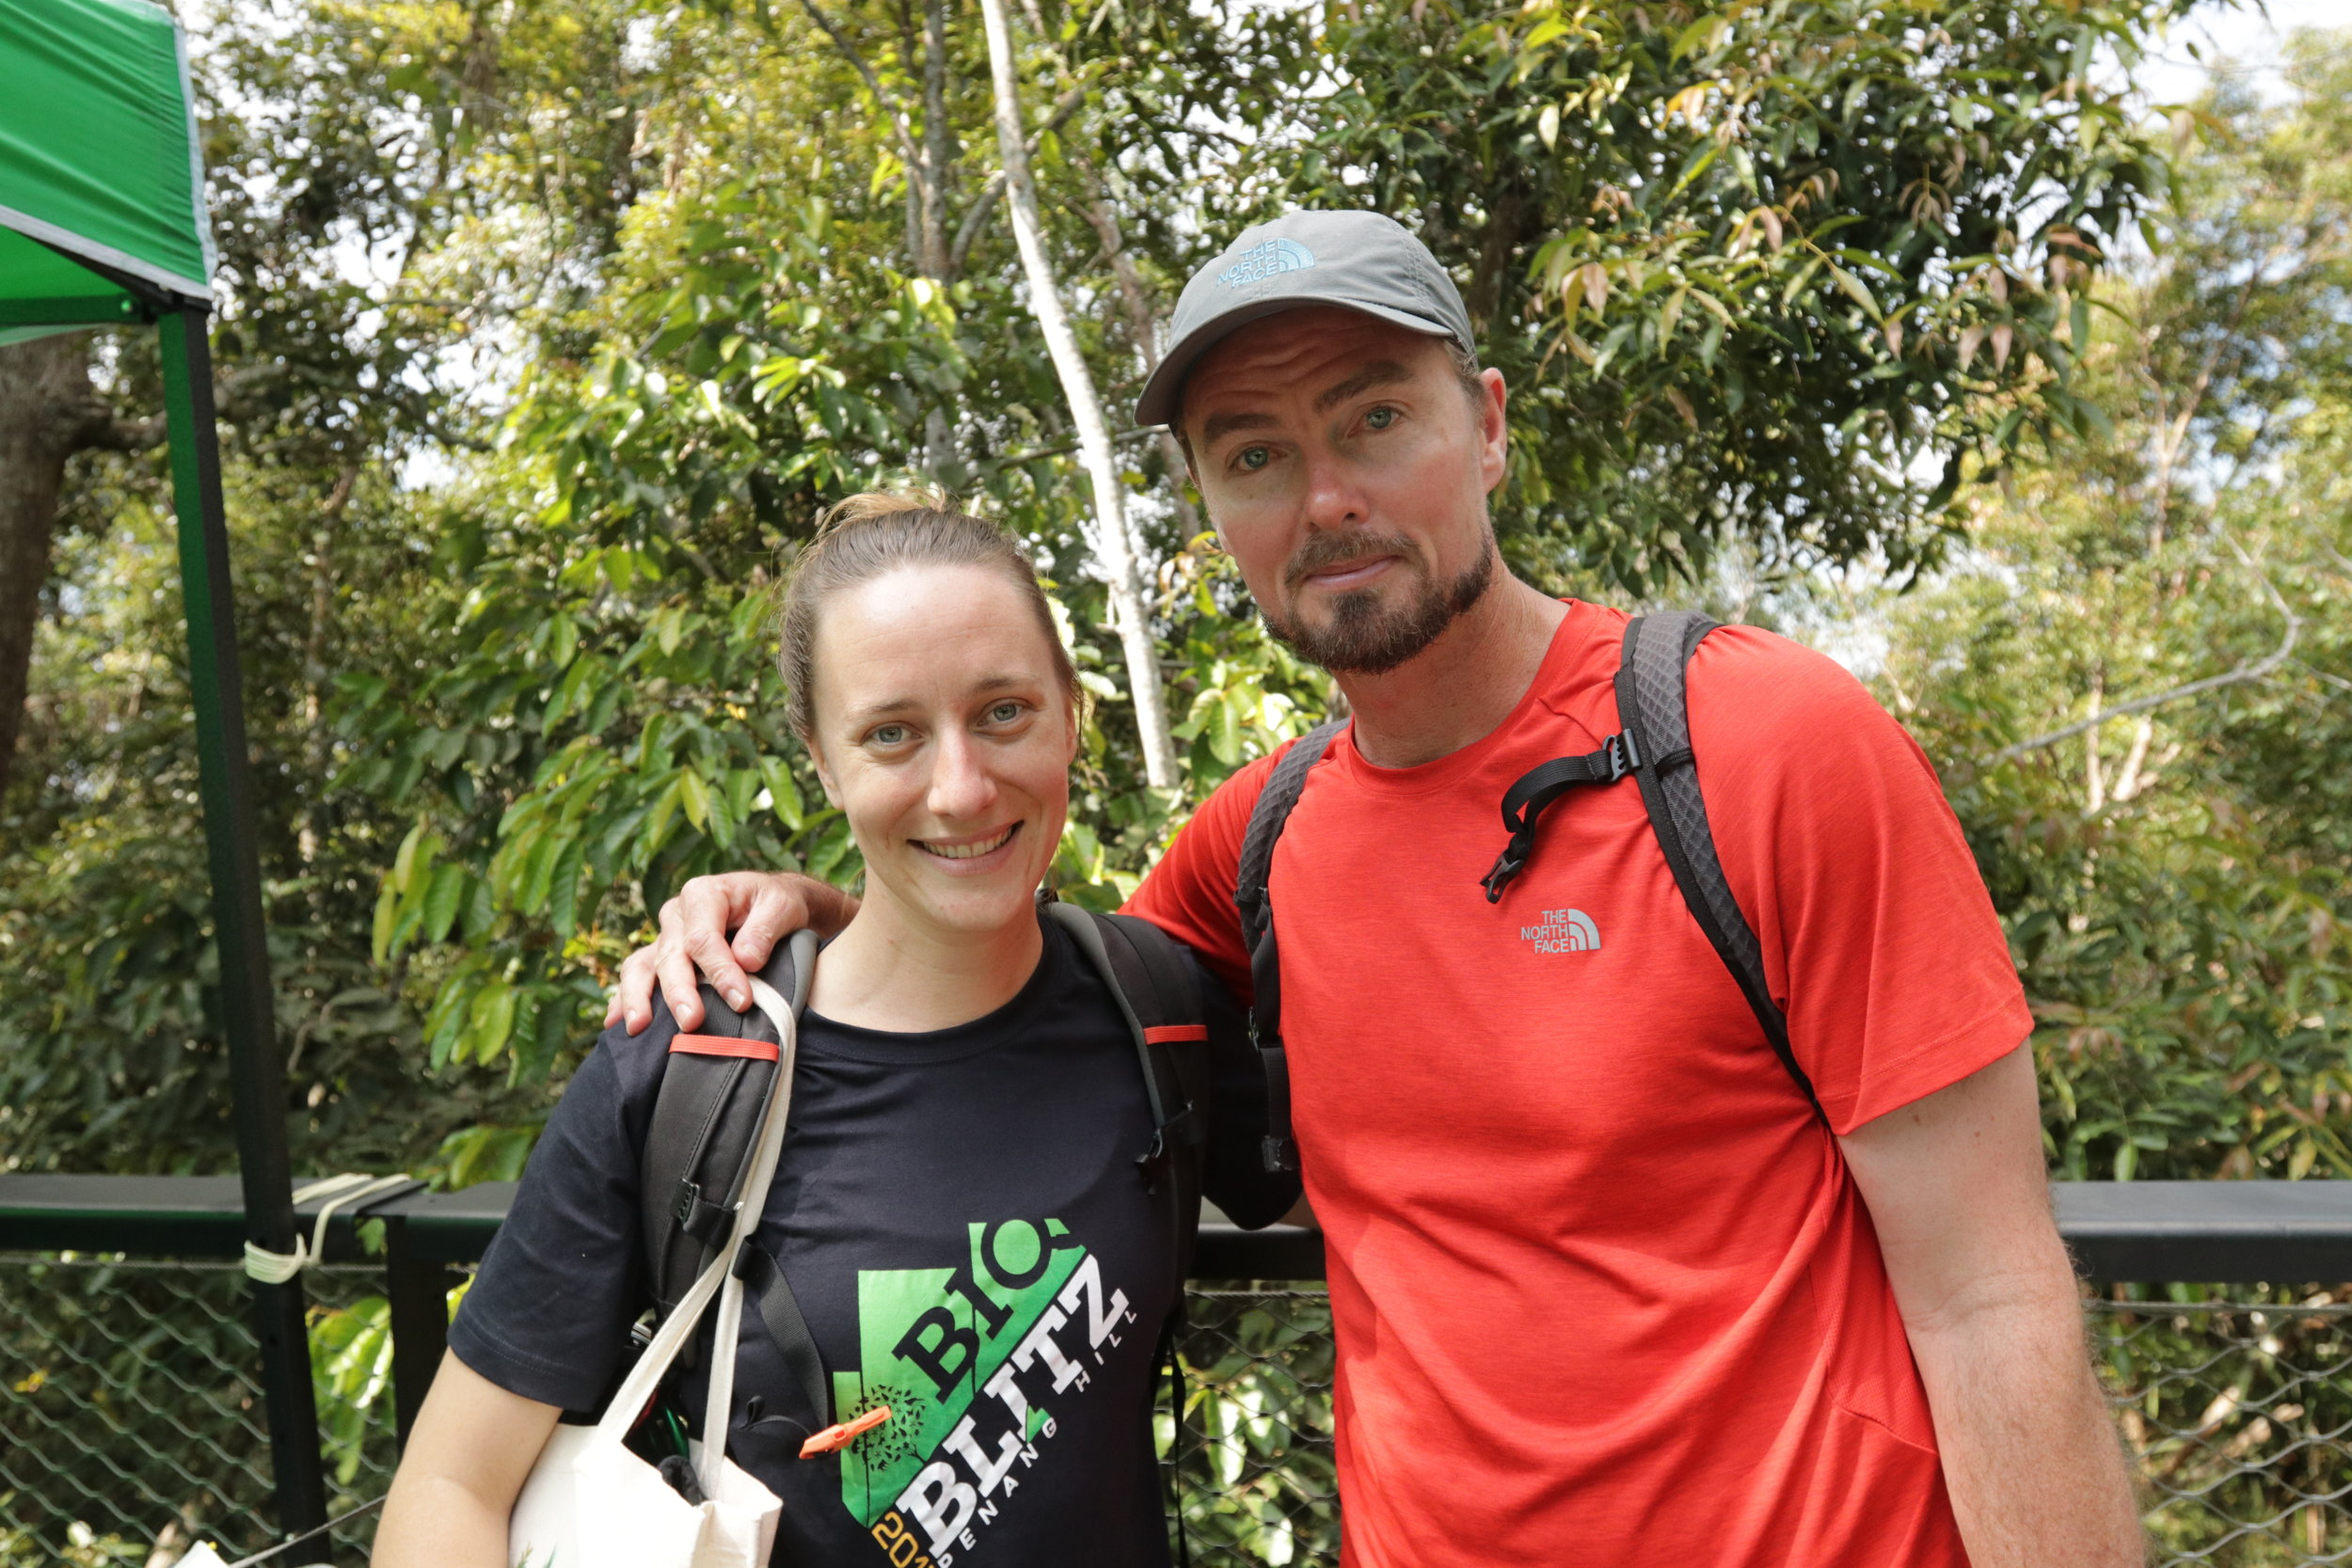 - DR.JEN SANGER AND STEVE PEARCE ARE SCIENTISTS, IMAGING PROFESSIONALS AND TREE CLIMBERS THAT HAVE specialised IN BIG TREE ENVIRONMENTAL EDUCATION CONTENT.OUR GOAL IS TO INSPIRE AND EDUCATE WITH ADVENTURE, SCIENCE, passion & CREATIVITY.